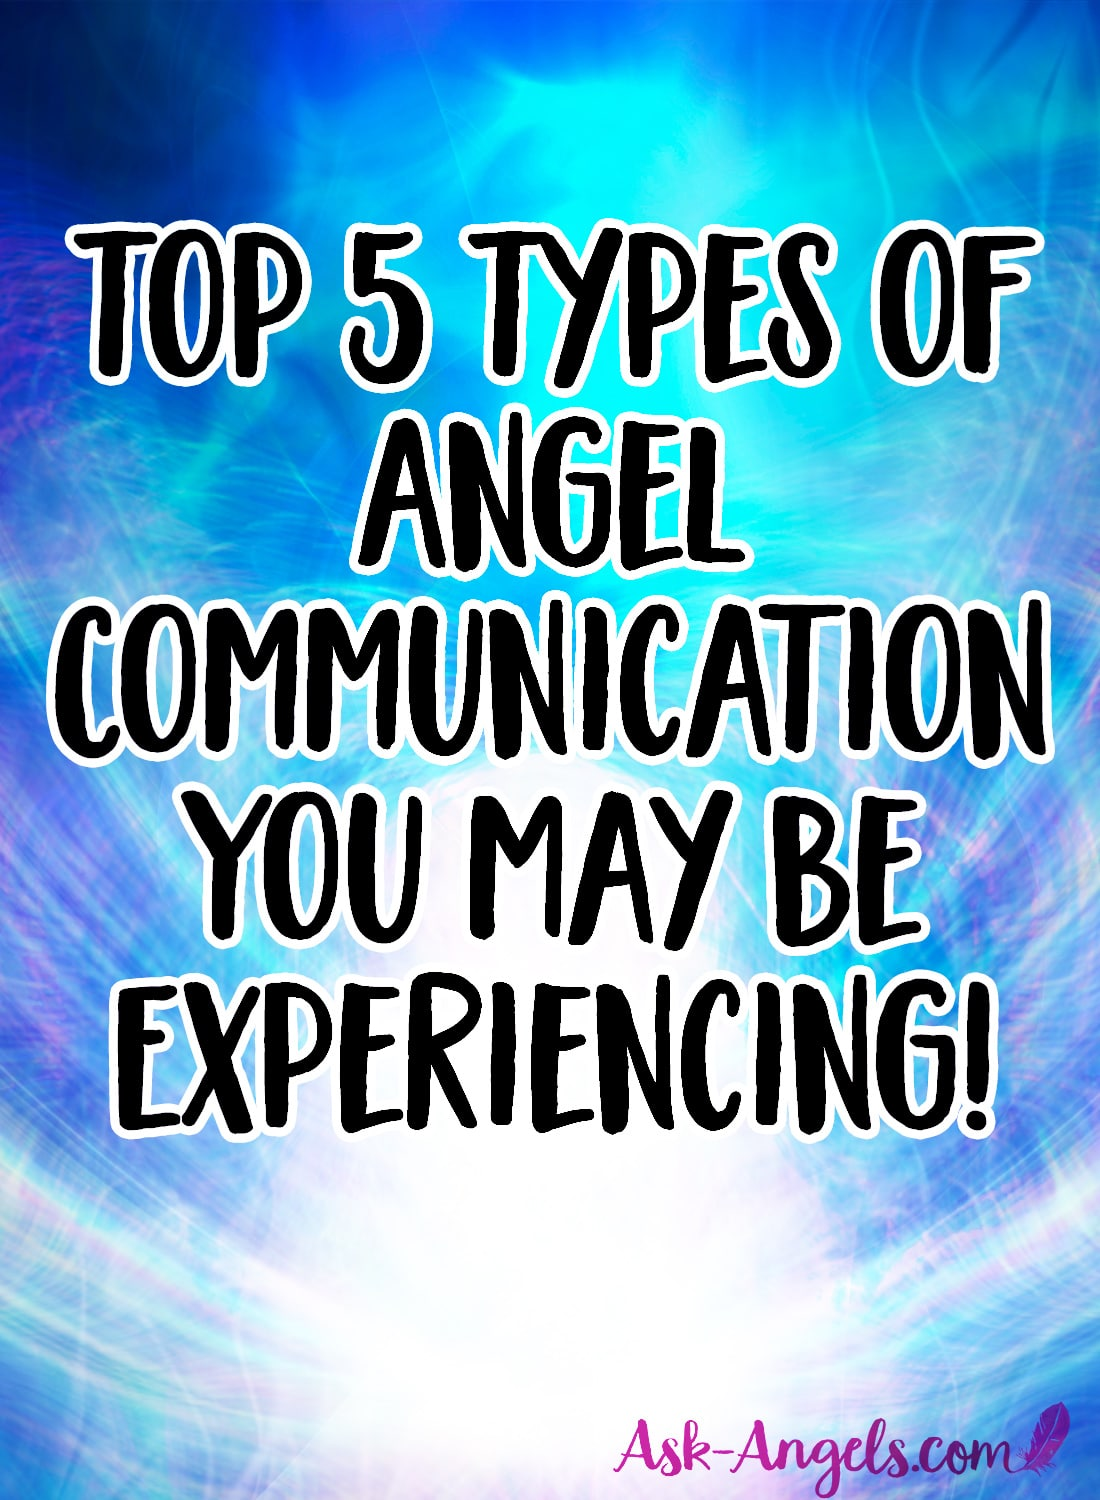 5 Types of Angel Communication You May Be Experiencing